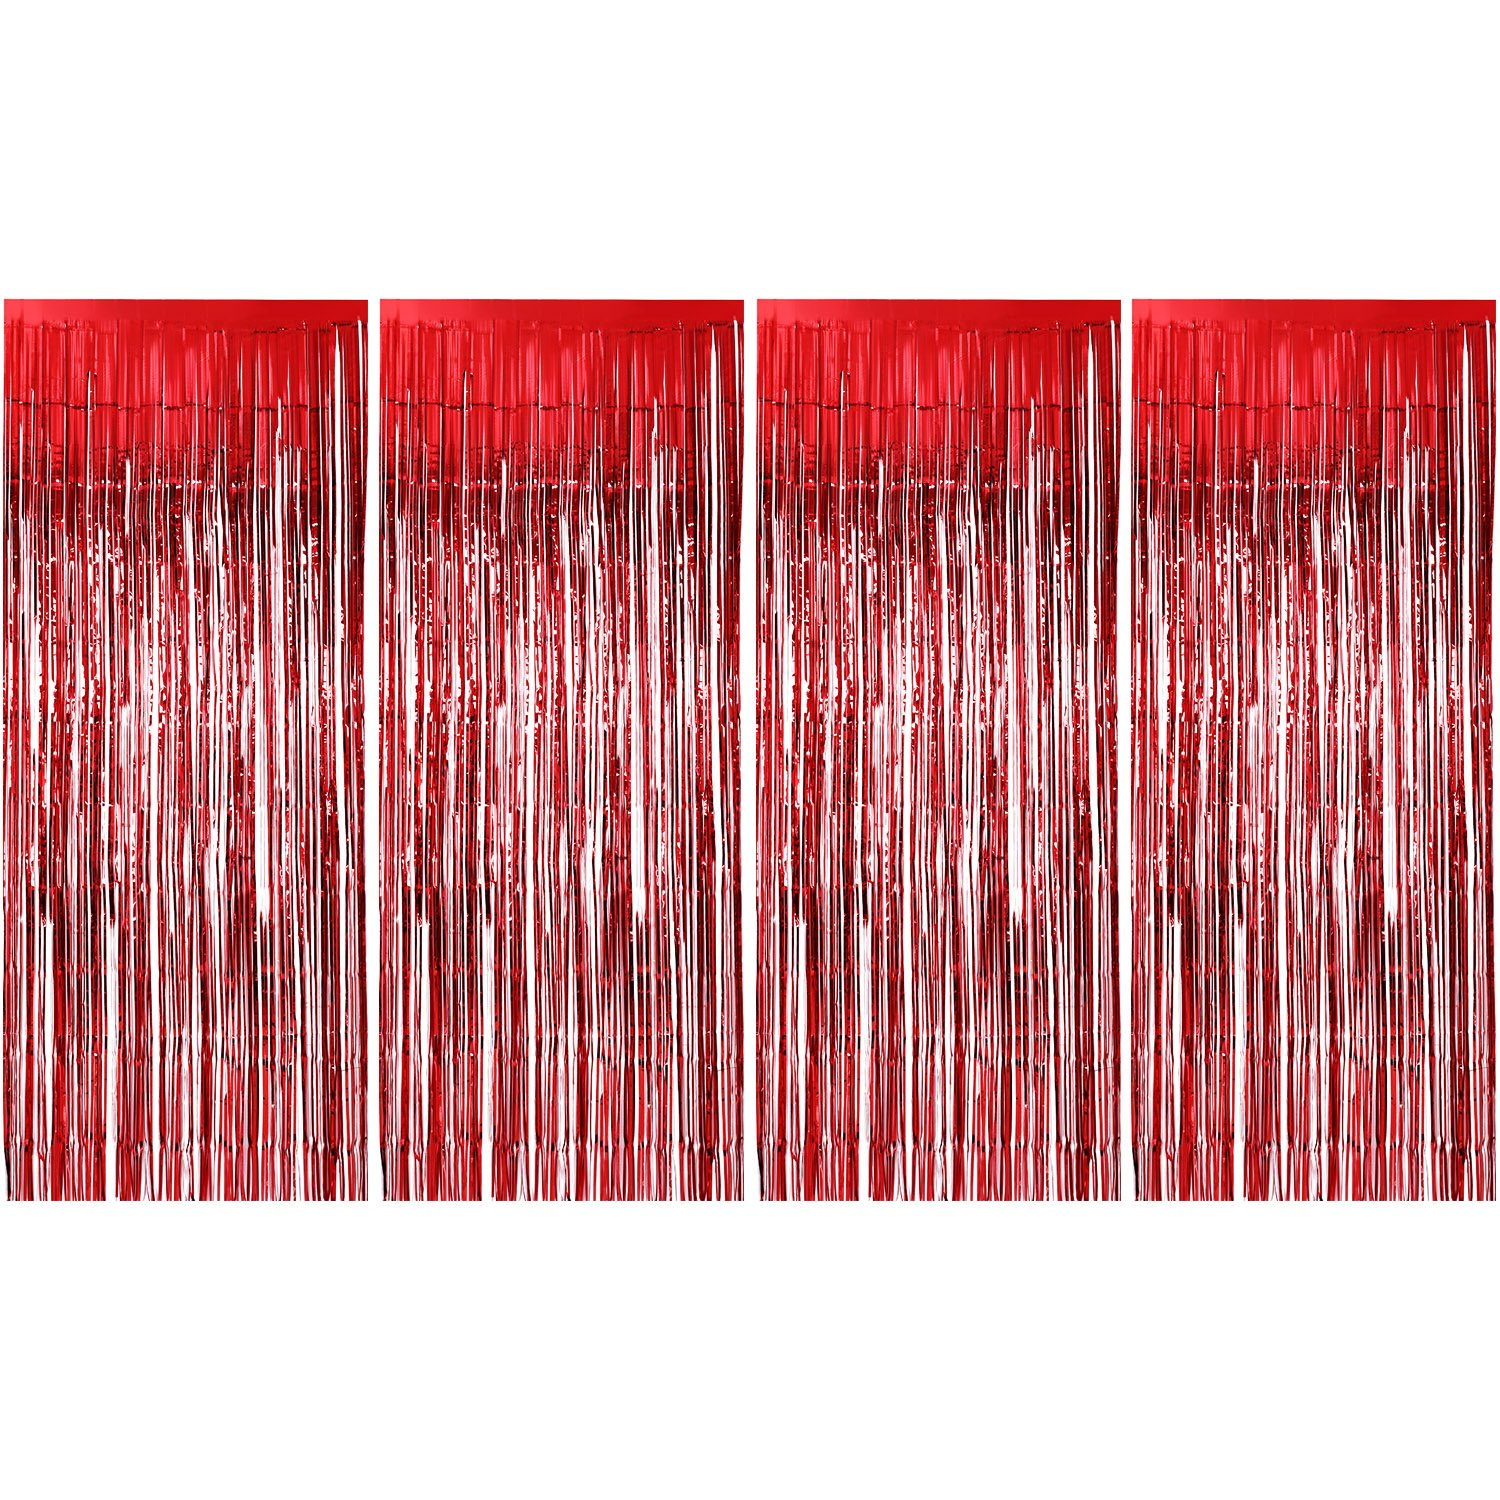 Sumind 4 Pack Foil Curtains Metallic Fringe Curtains Shimmer Curtain for Birthday Wedding Party Christmas Decorations (Red)